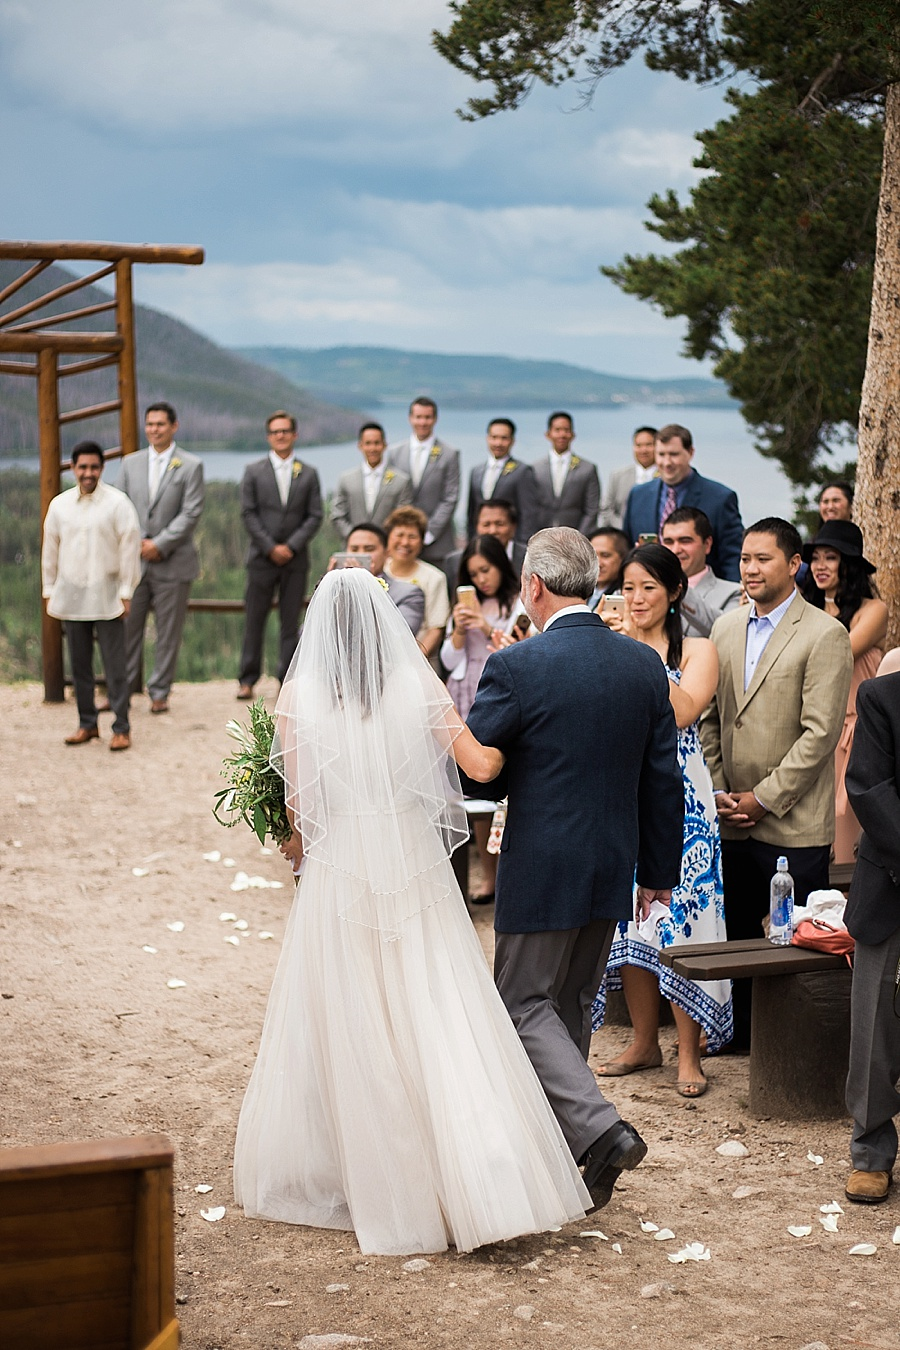 JR_Magat_Photography_Colorado_Wedding_0103.jpg